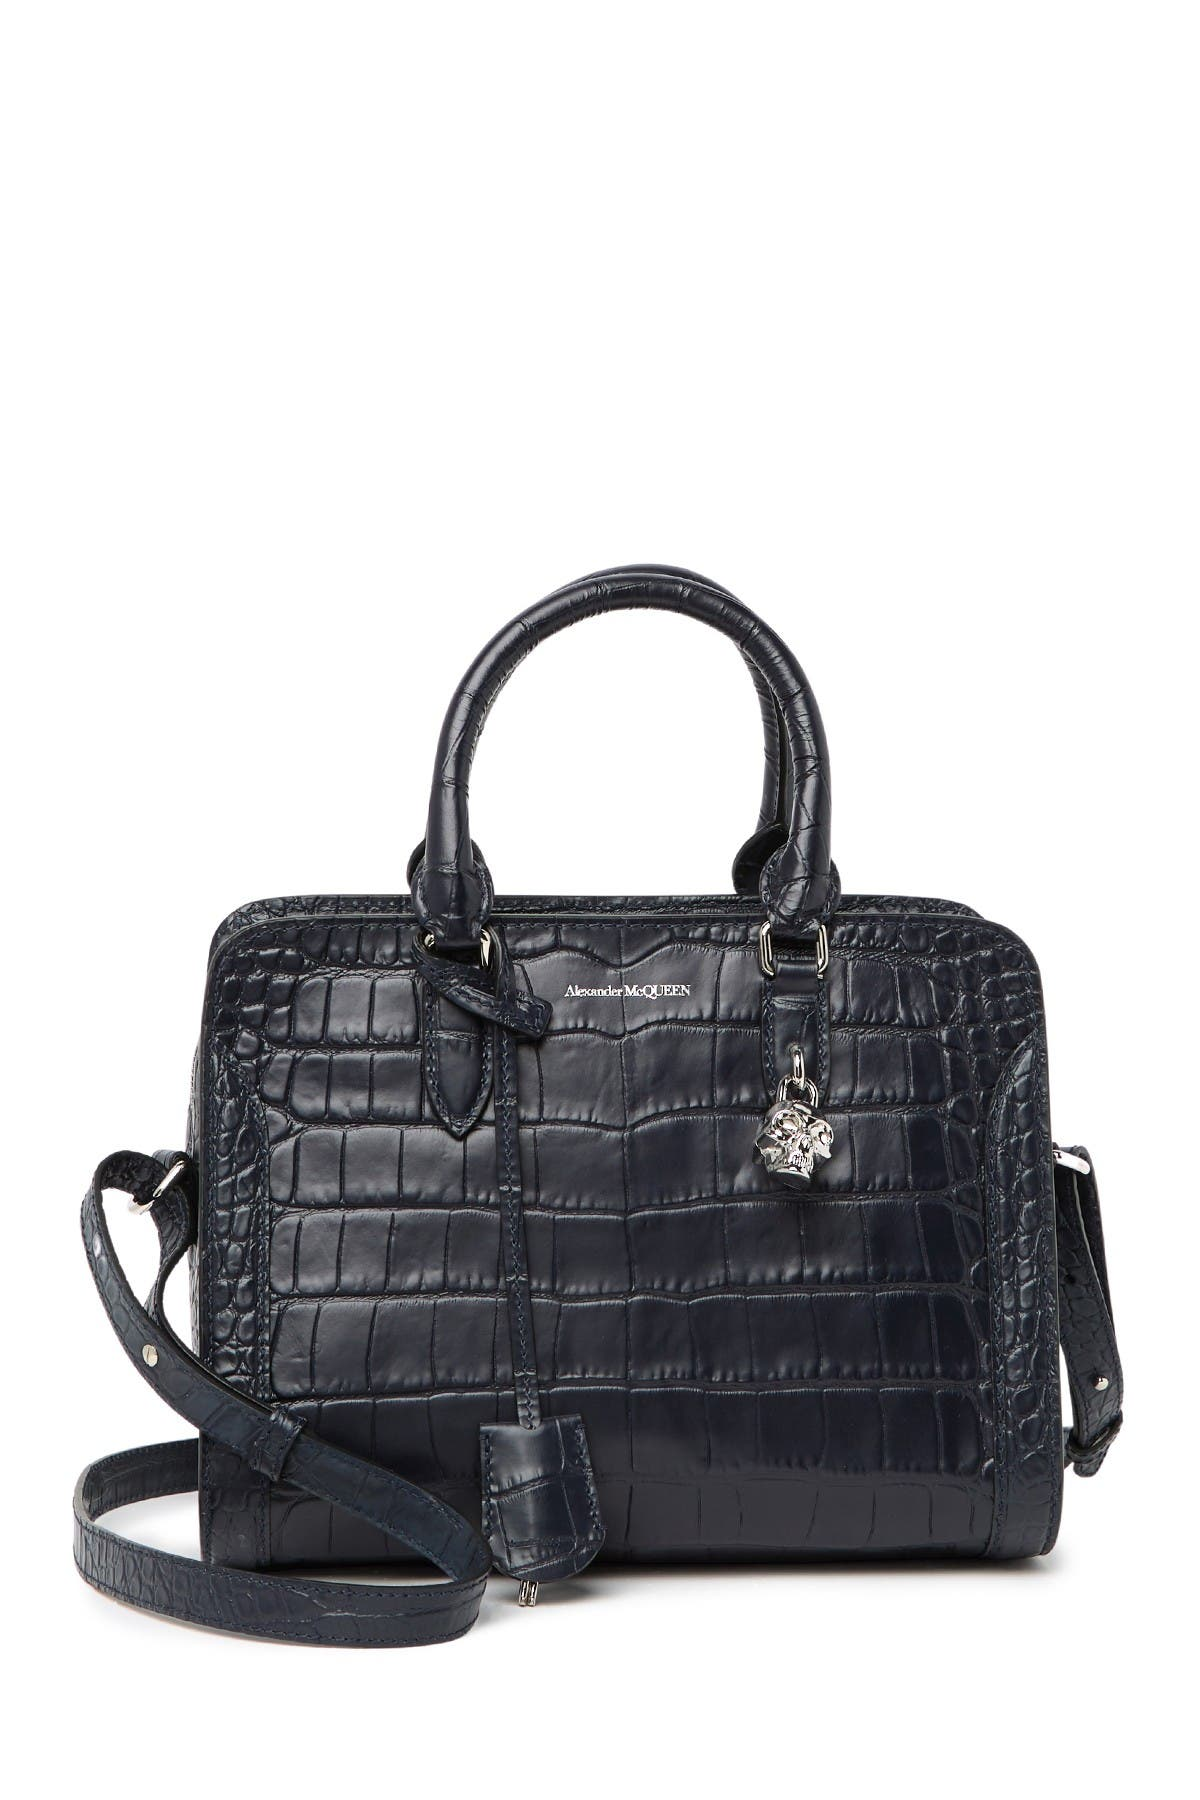 Image of Alexander McQueen Croc Embossed Leather Small Zip Shoulder Bag